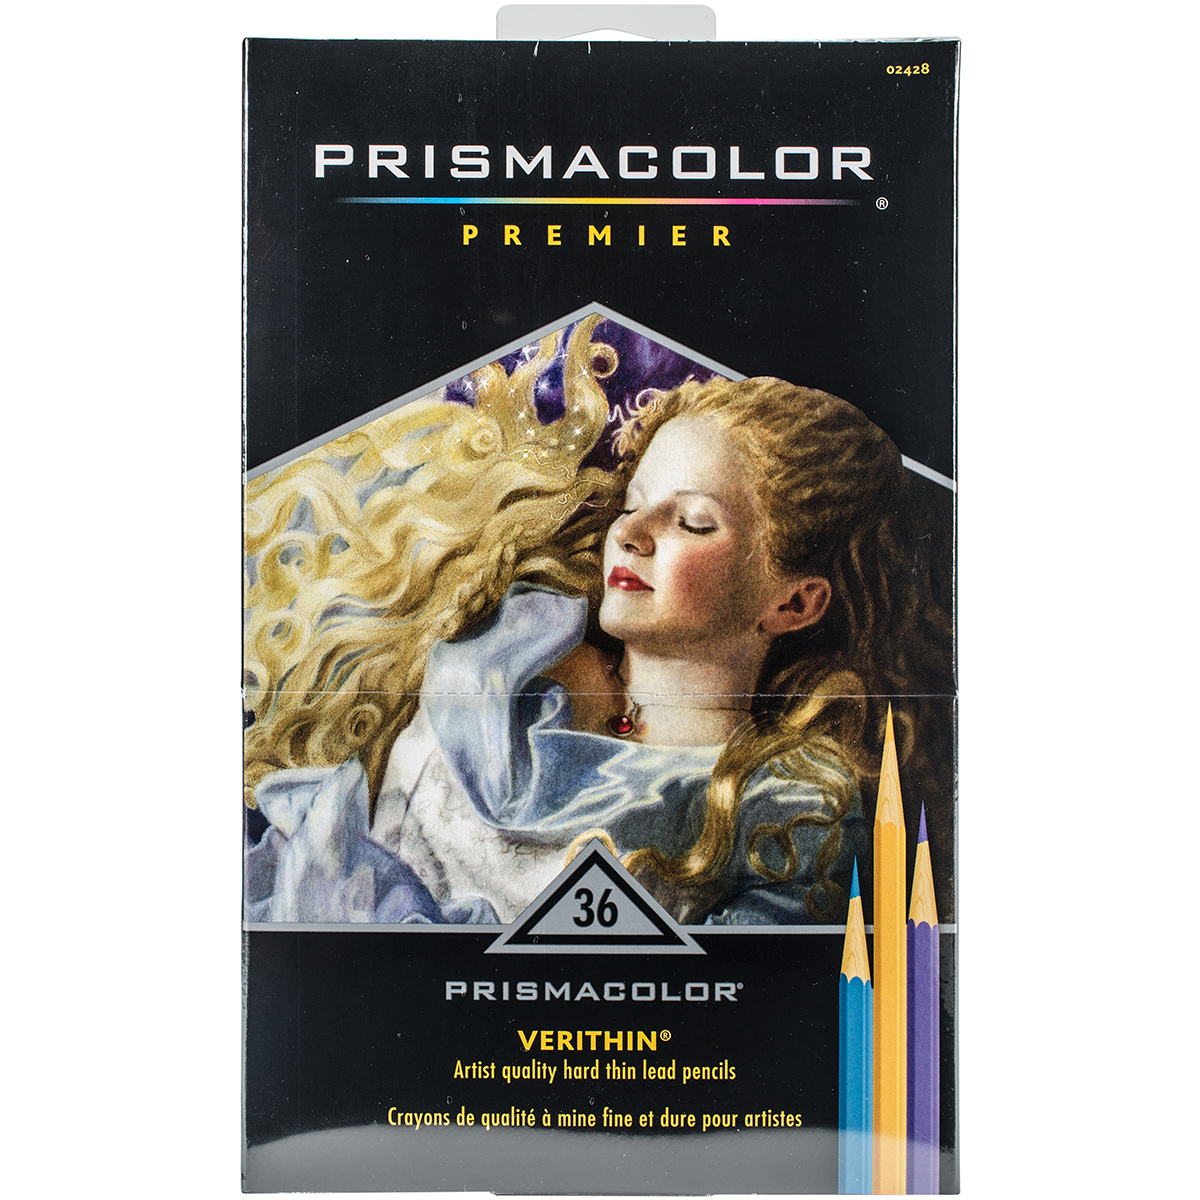 Prismacolor Premier Verithin Colored Pencils 36/Pkg-